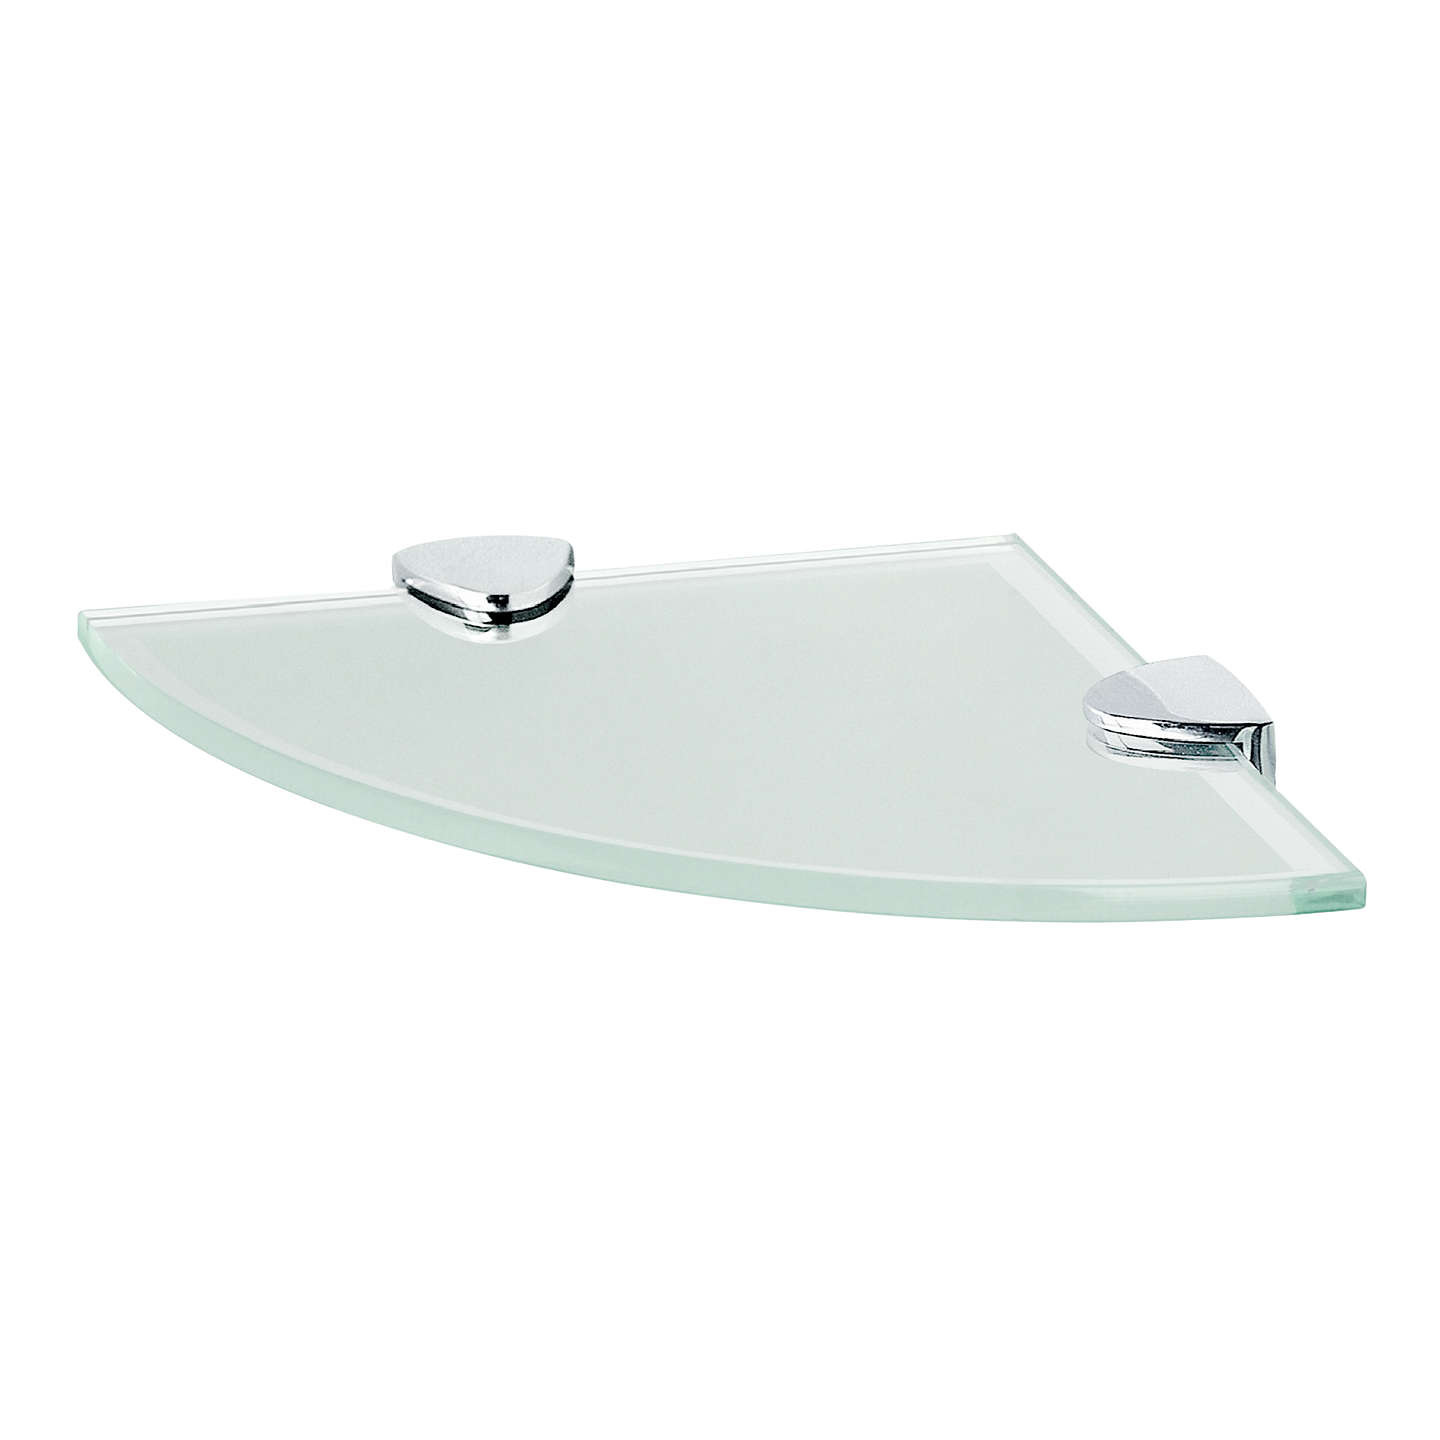 Miller frosted glass bathroom corner shelf at john lewis - Bathroom glass corner shelves shower ...